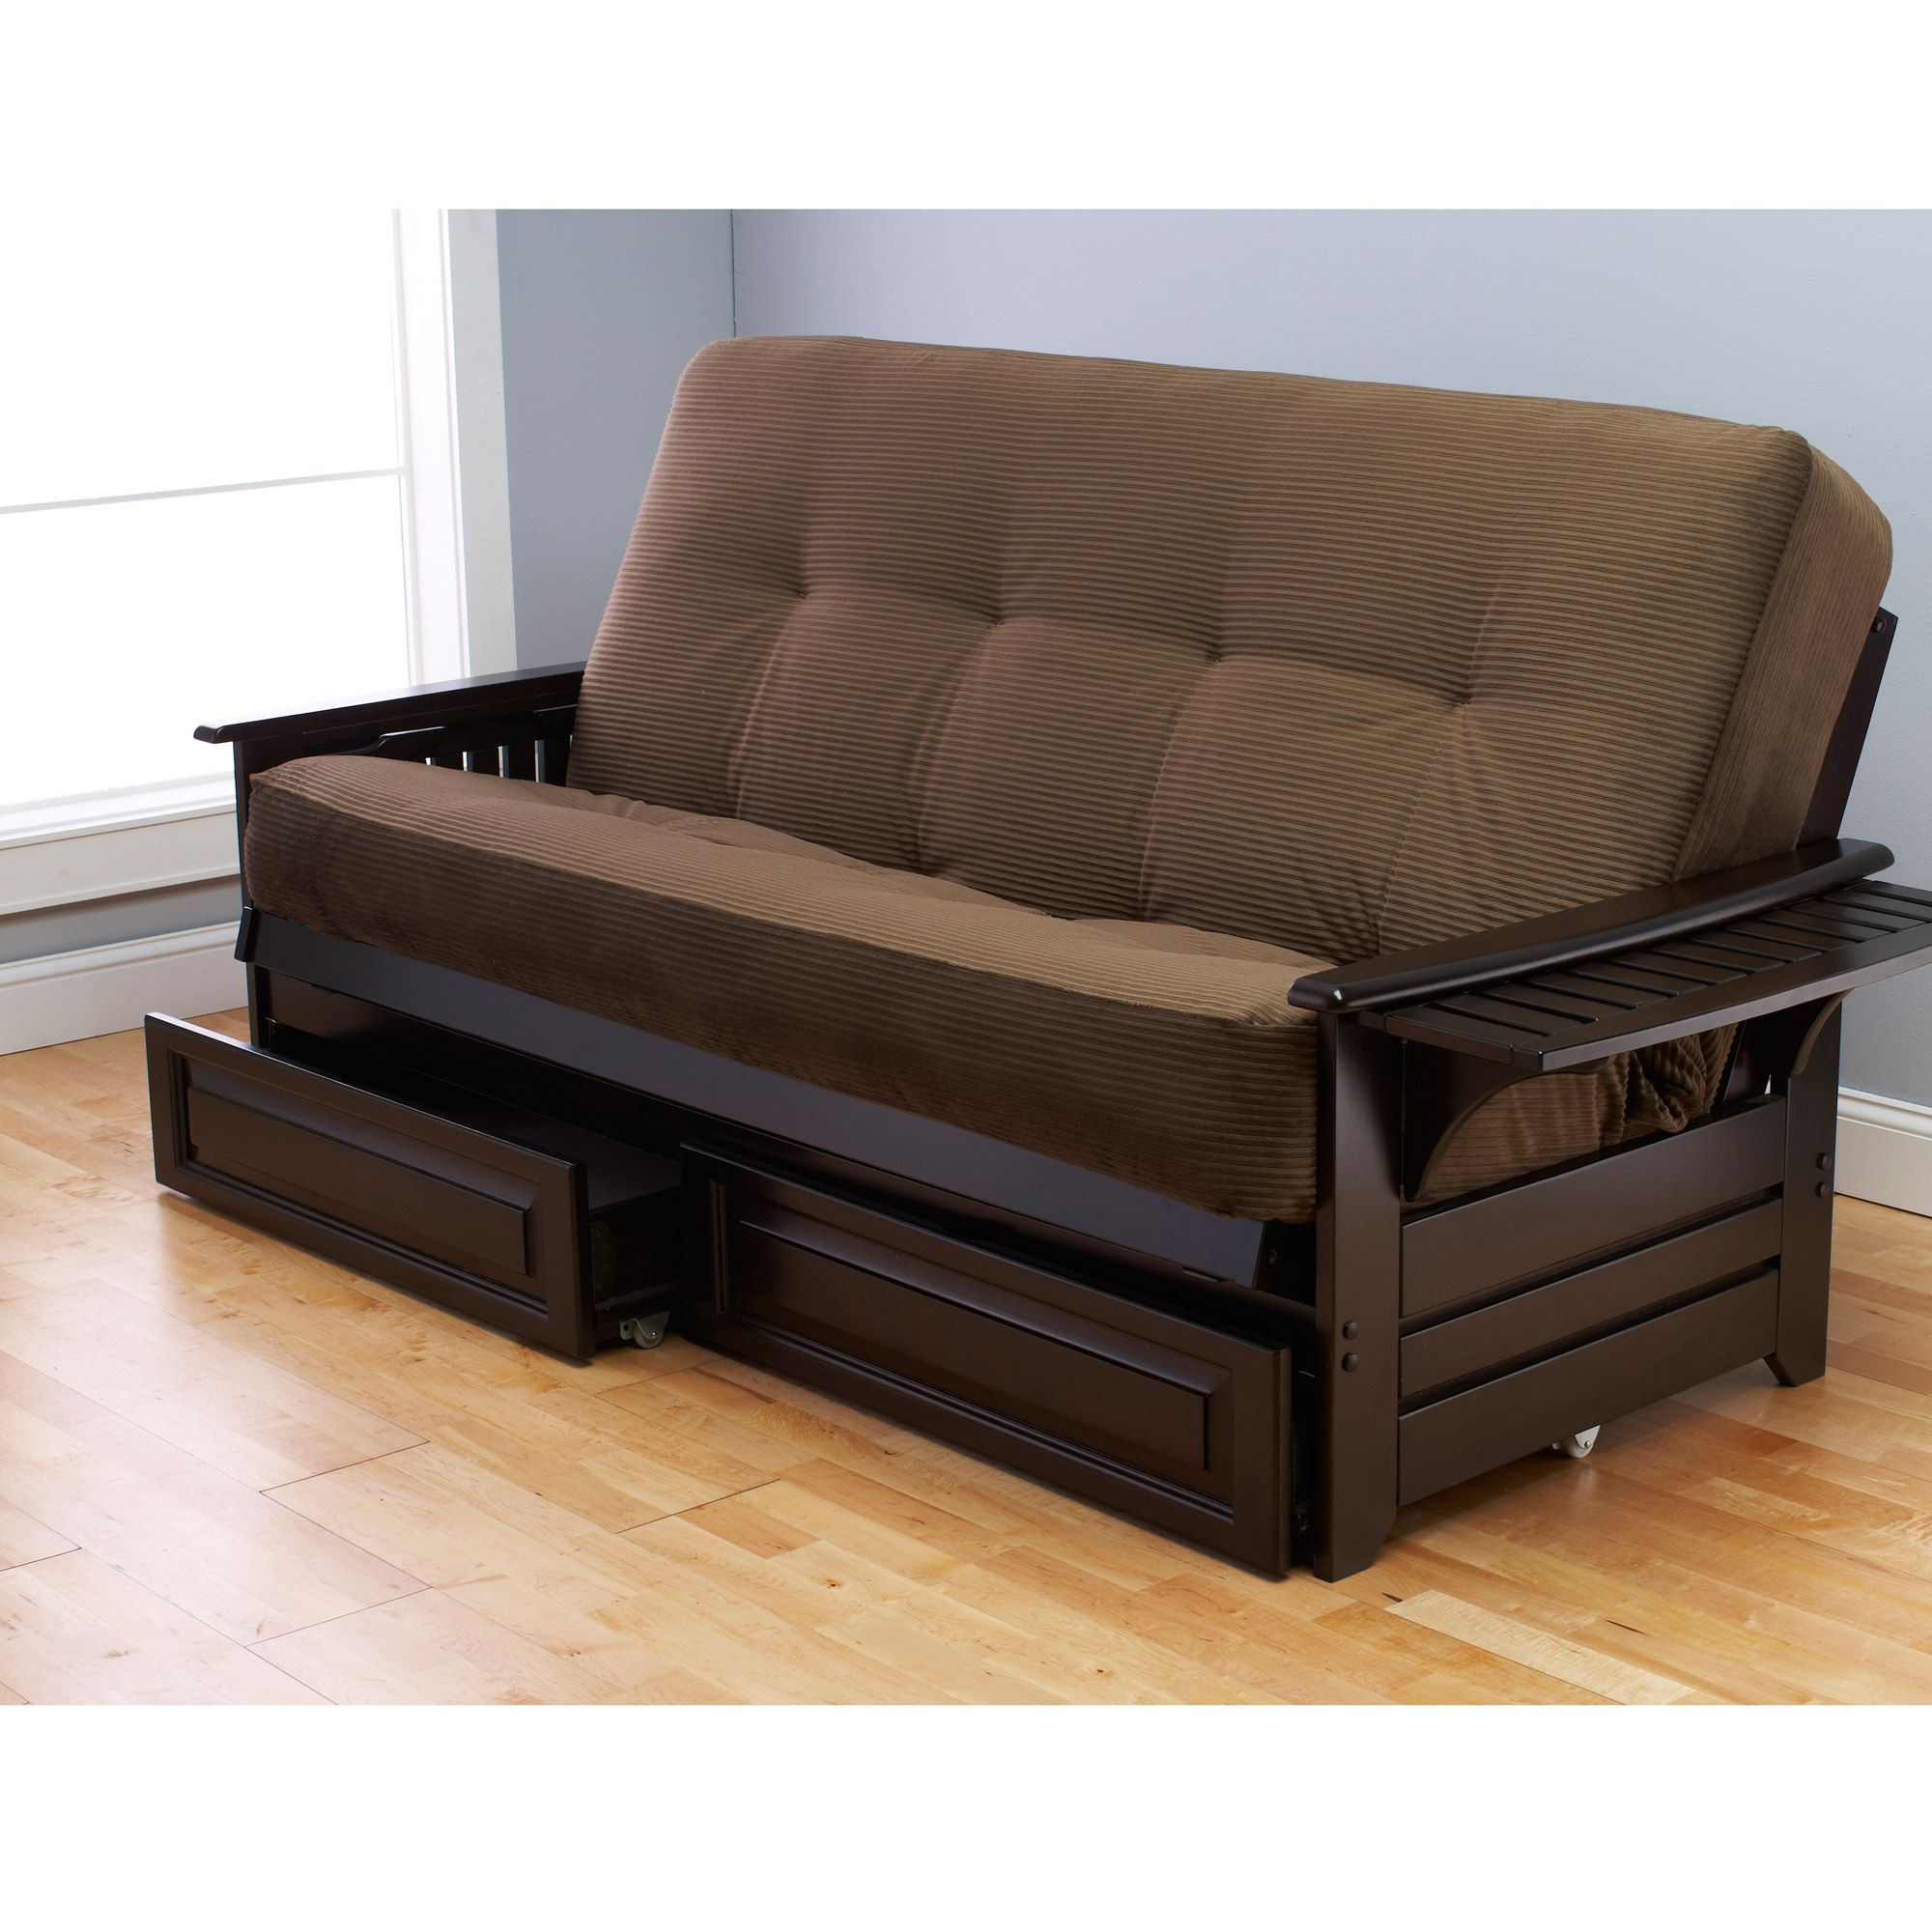 direct klak futons klik at liquidation wemkil futon page vancouver discount blowout author